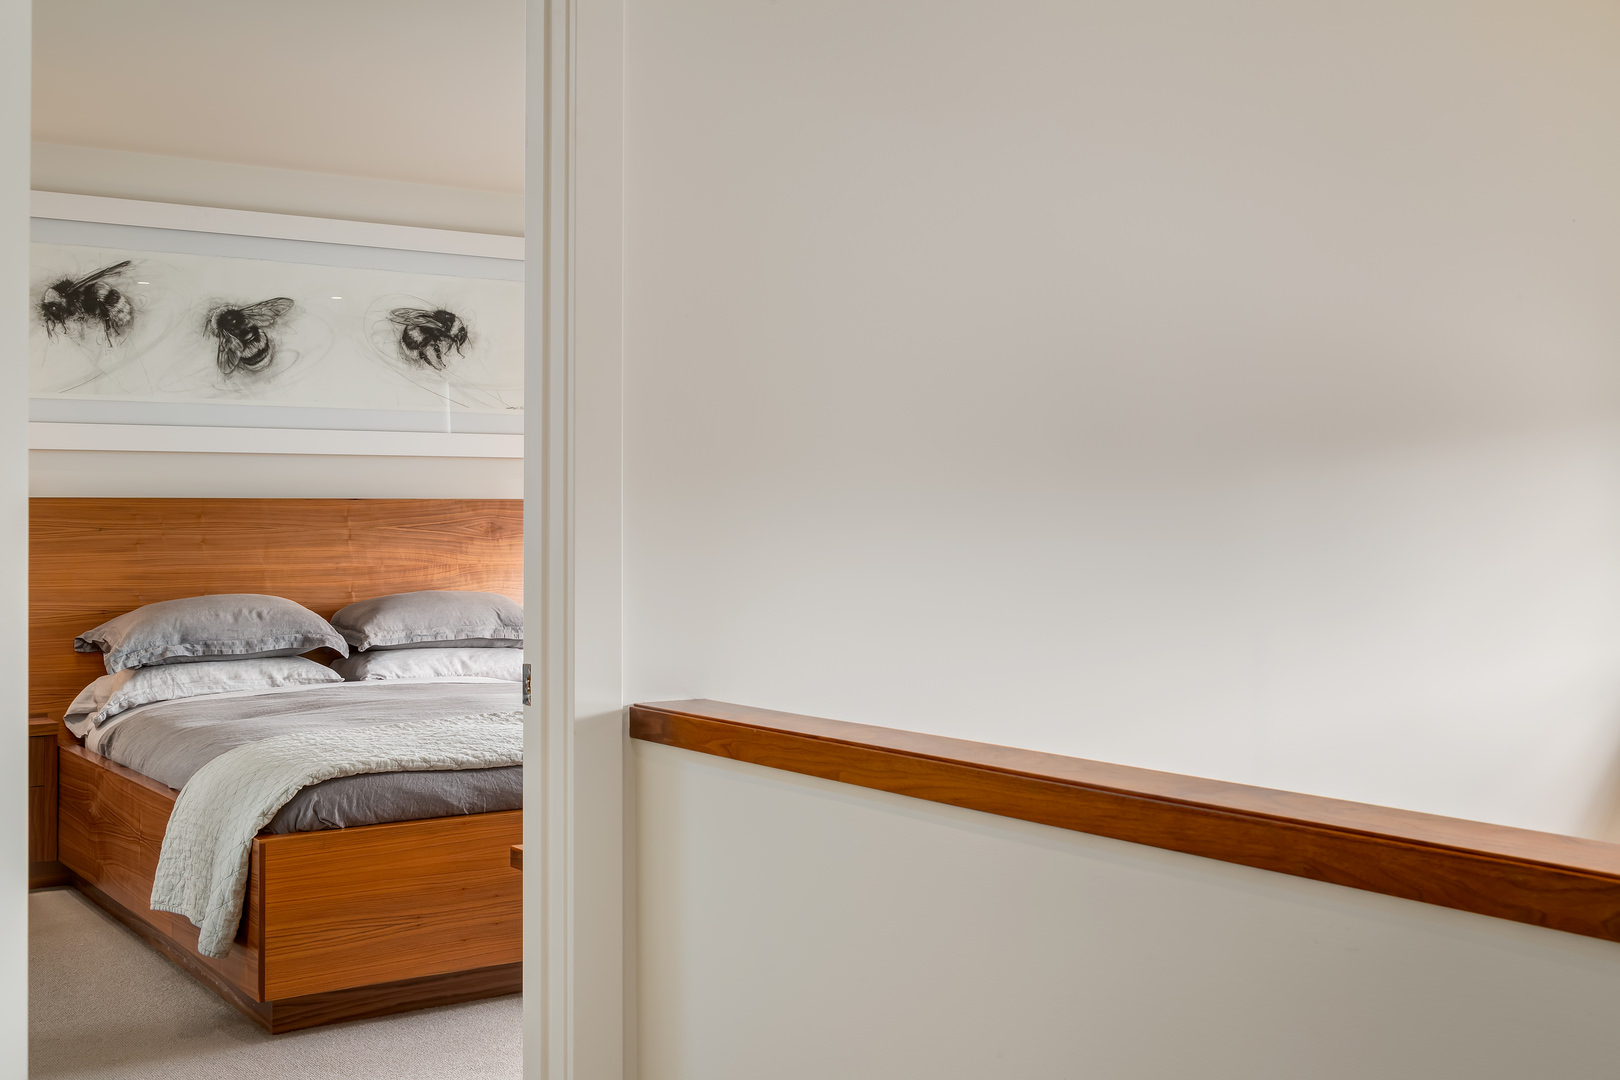 The walnut wood theme is even found in the bedrooms, with custom-made bed frames.